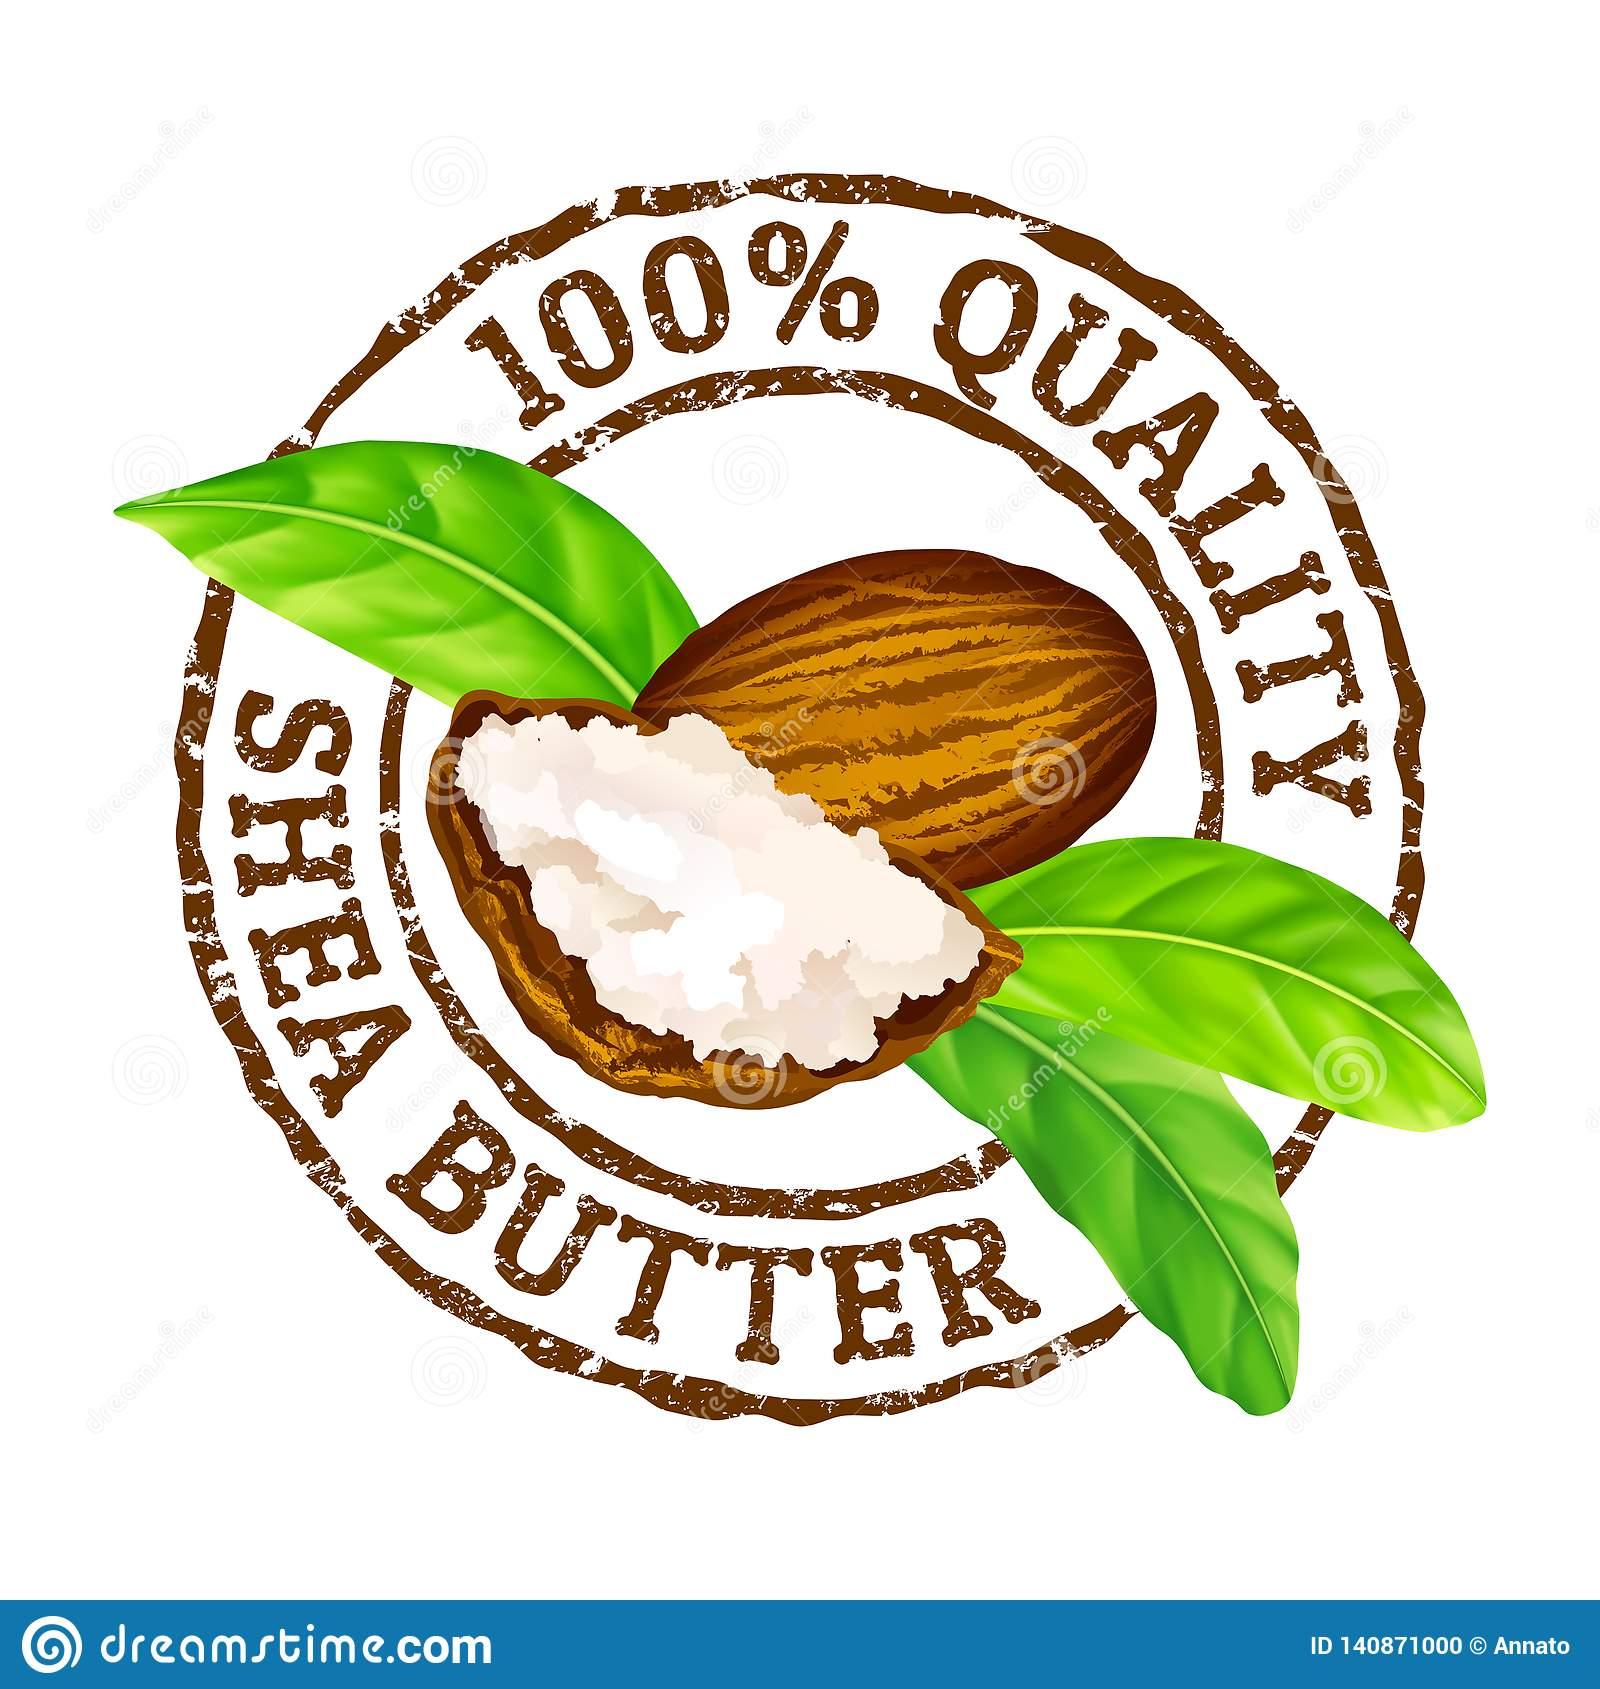 Vector grunge rubber stamp 100 quality shea butter on a white background.